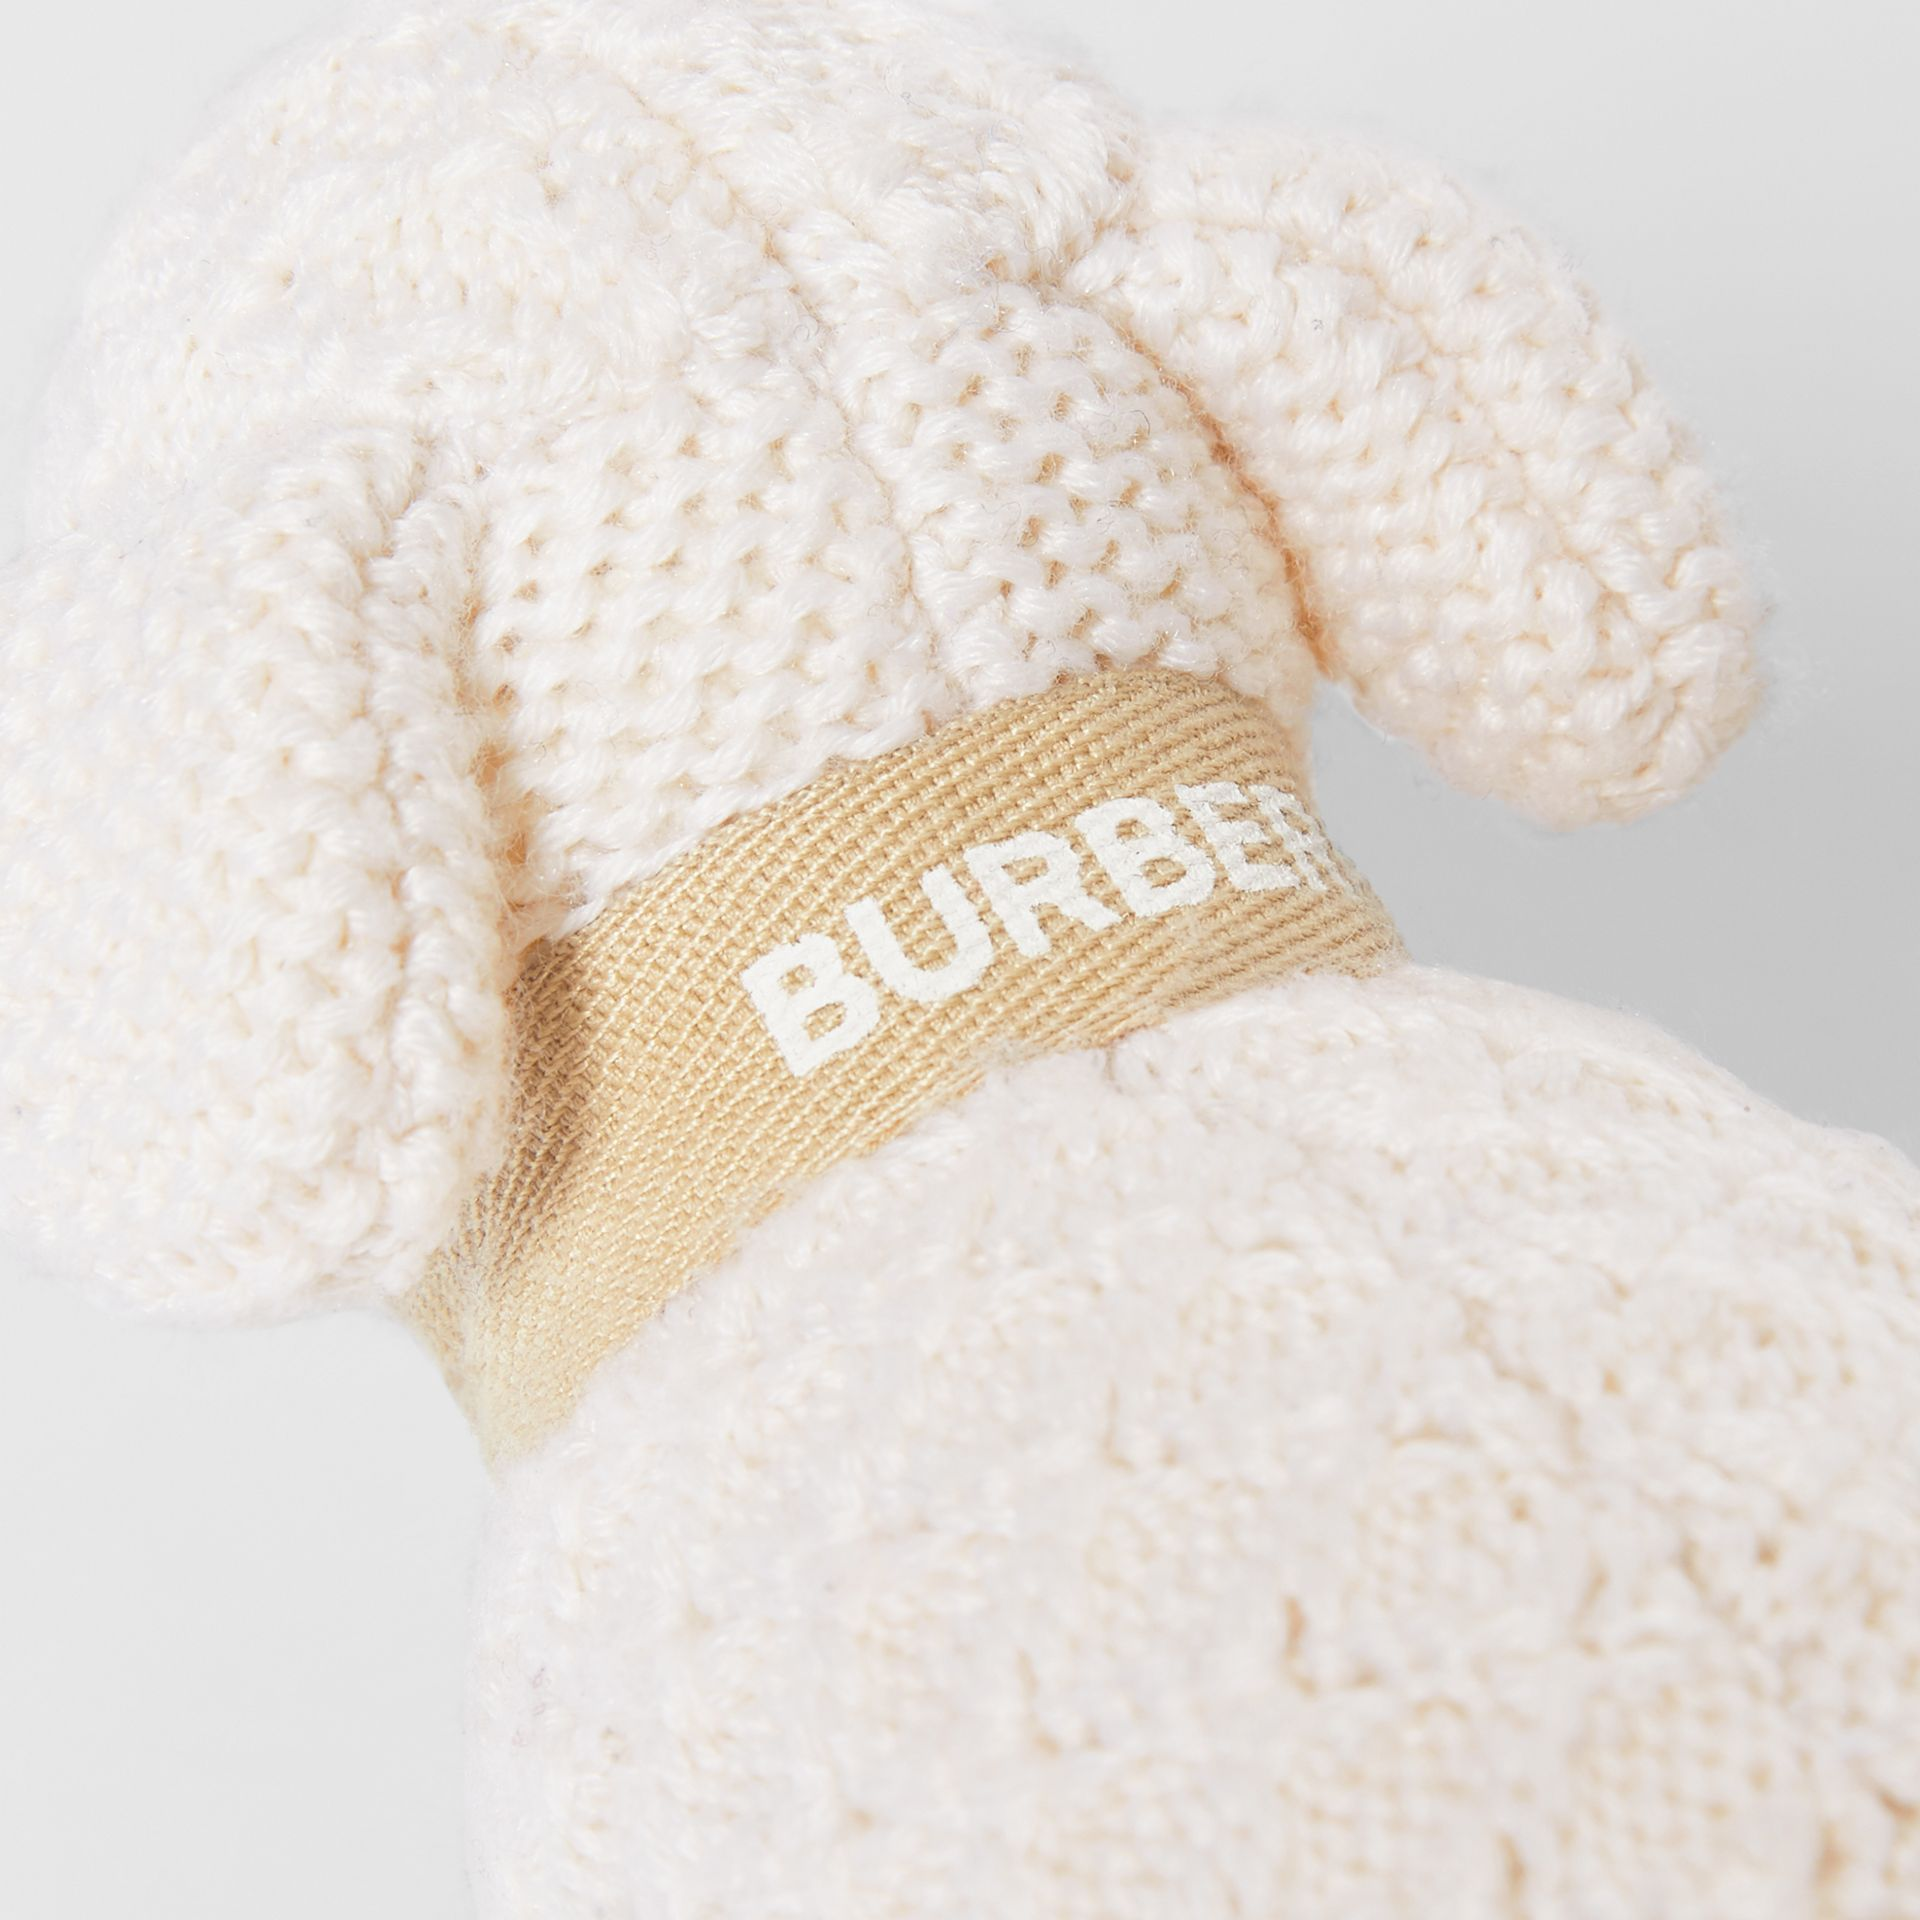 Logo Print Wool Cashmere Six-piece Baby Gift Set in Ivory - Children | Burberry United Kingdom - gallery image 11